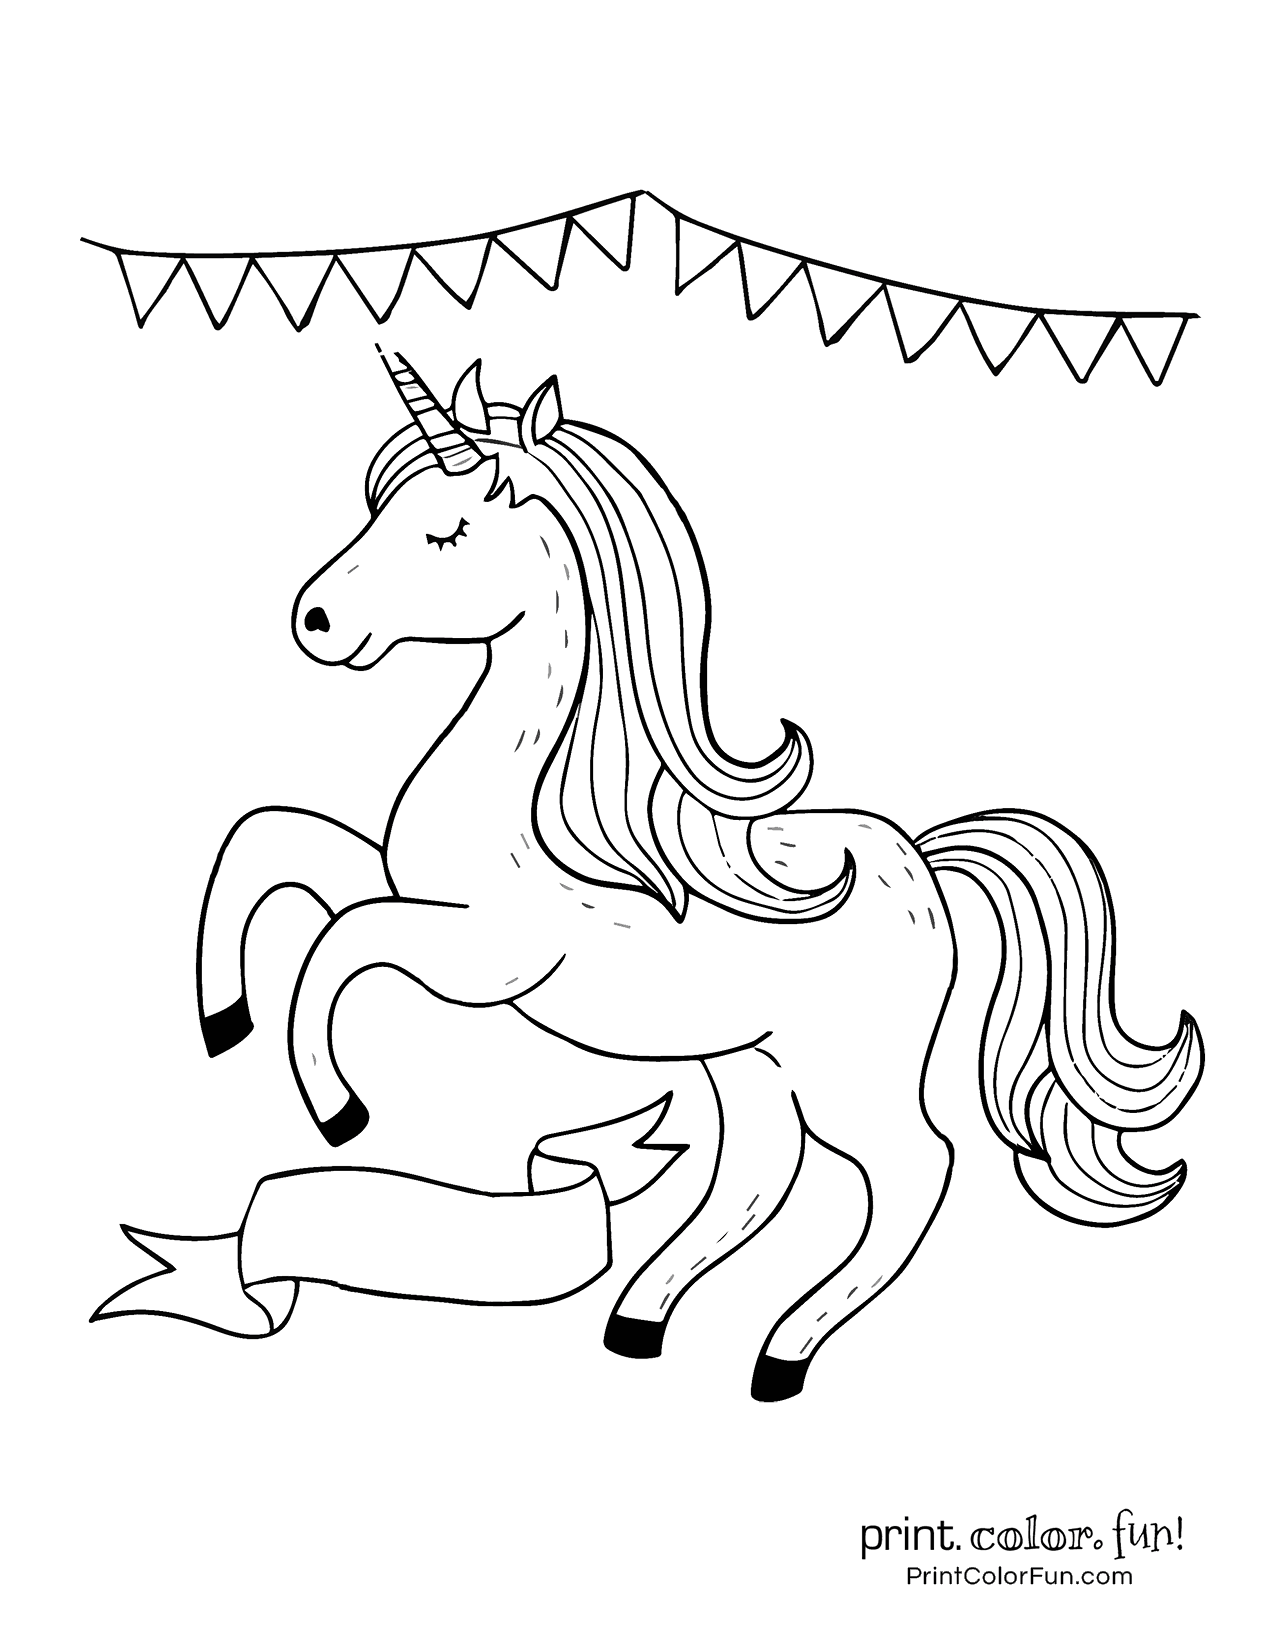 100 Magical Unicorn Coloring Pages The Ultimate Free Printable Collection At Print Color Fun Unicorn Coloring Pages Coloring Pages Mermaid Coloring Pages